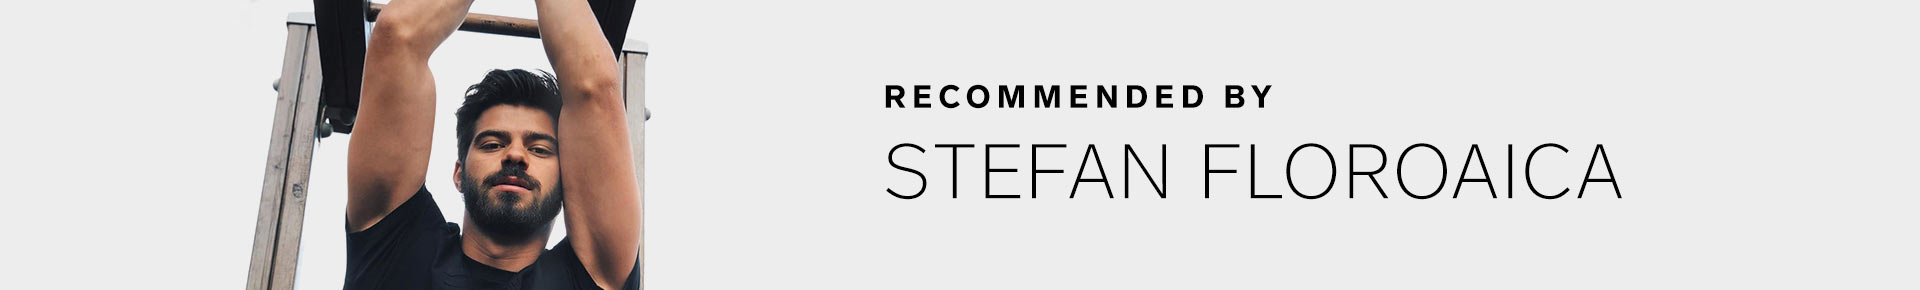 Recommended by Stefan Floroaica